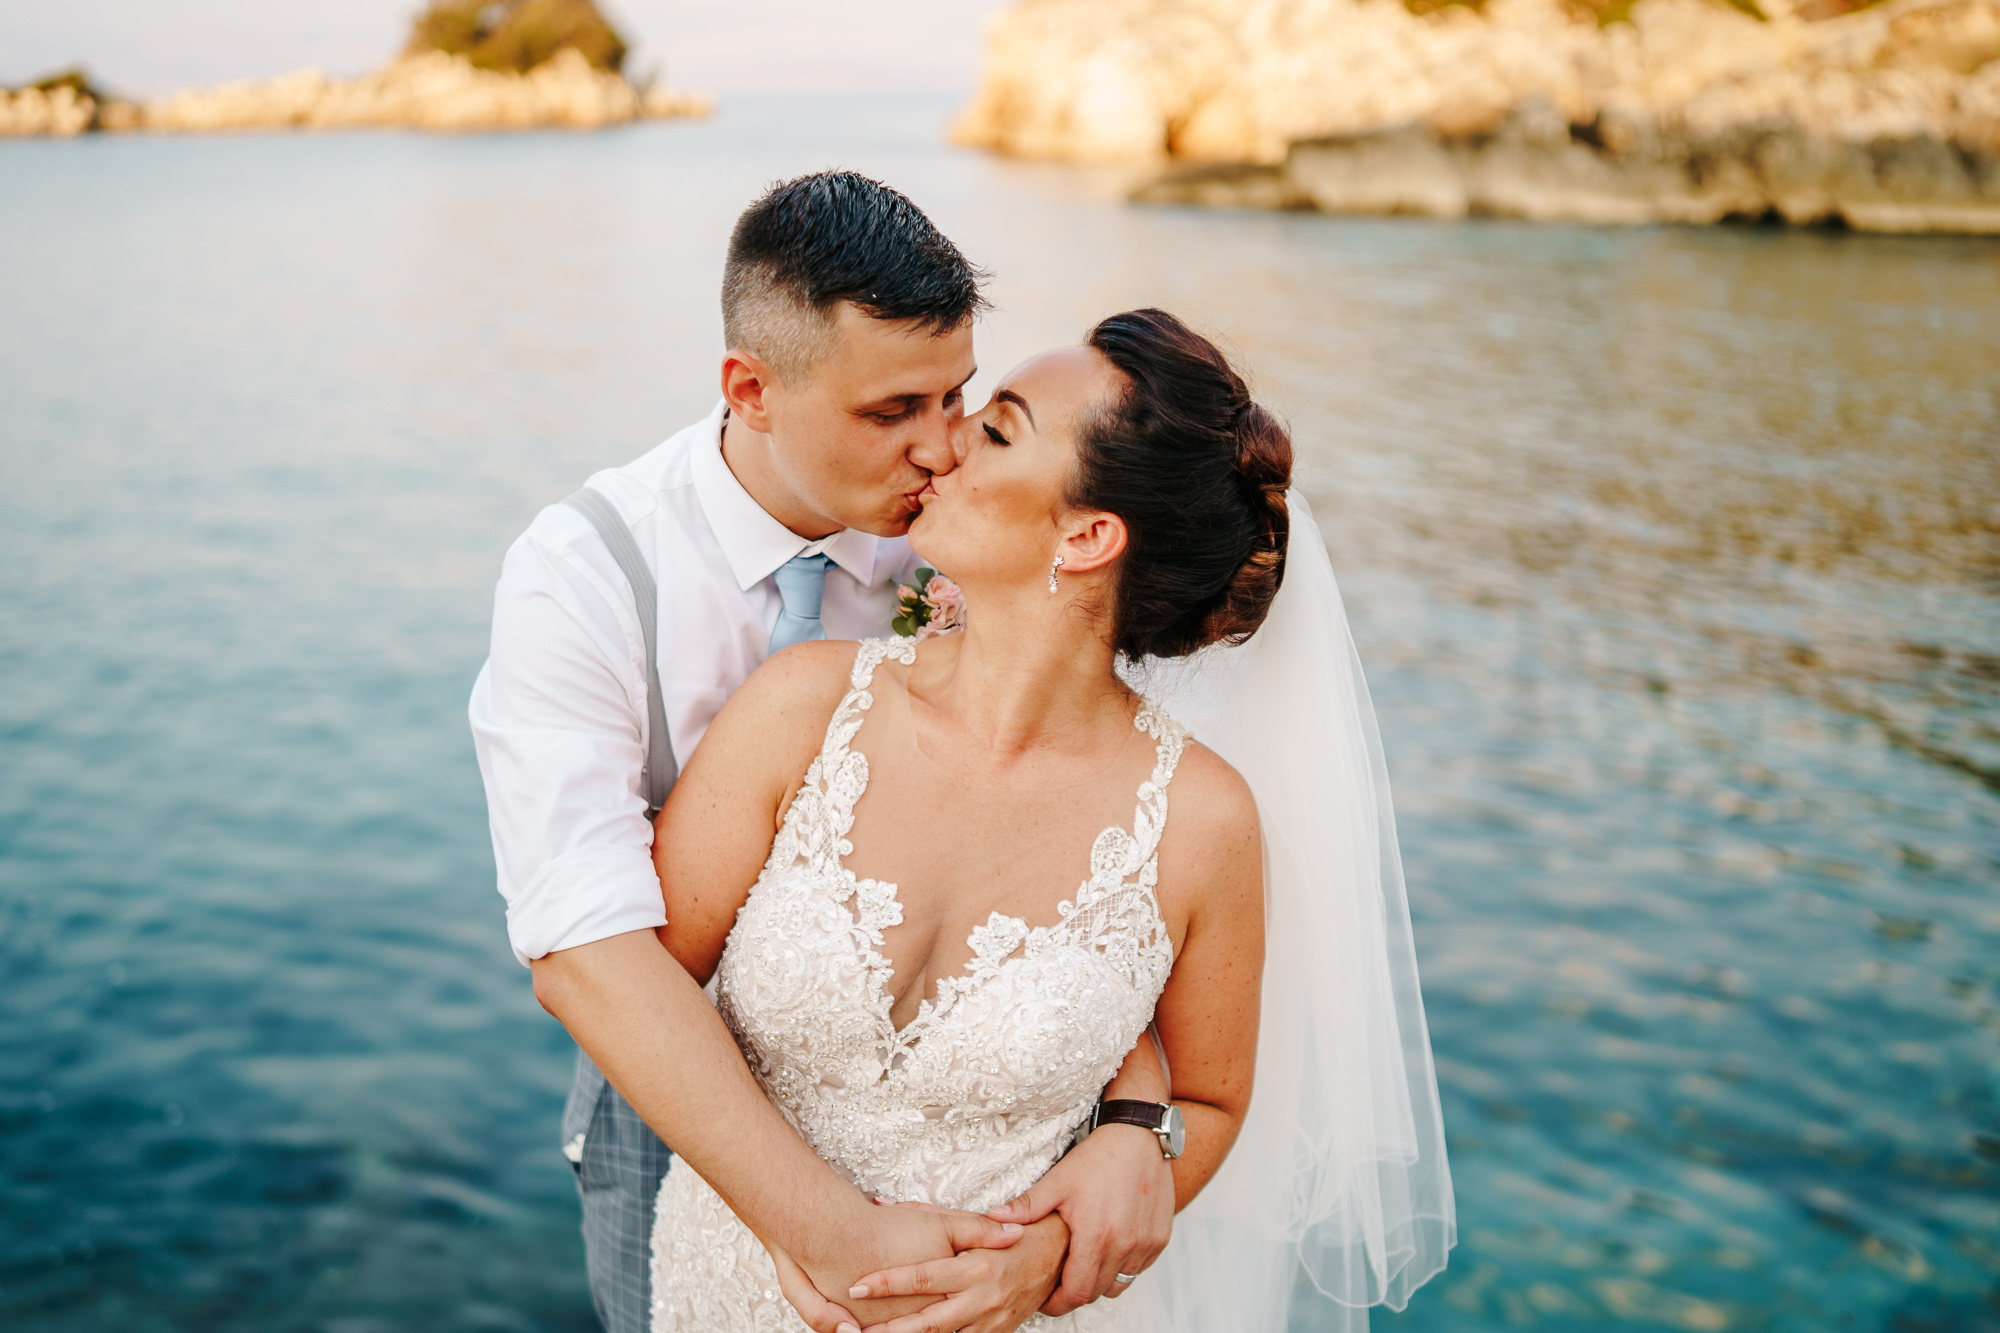 Greek Destination Wedding Photographer Corfu Martyn Hand Photography.jpg